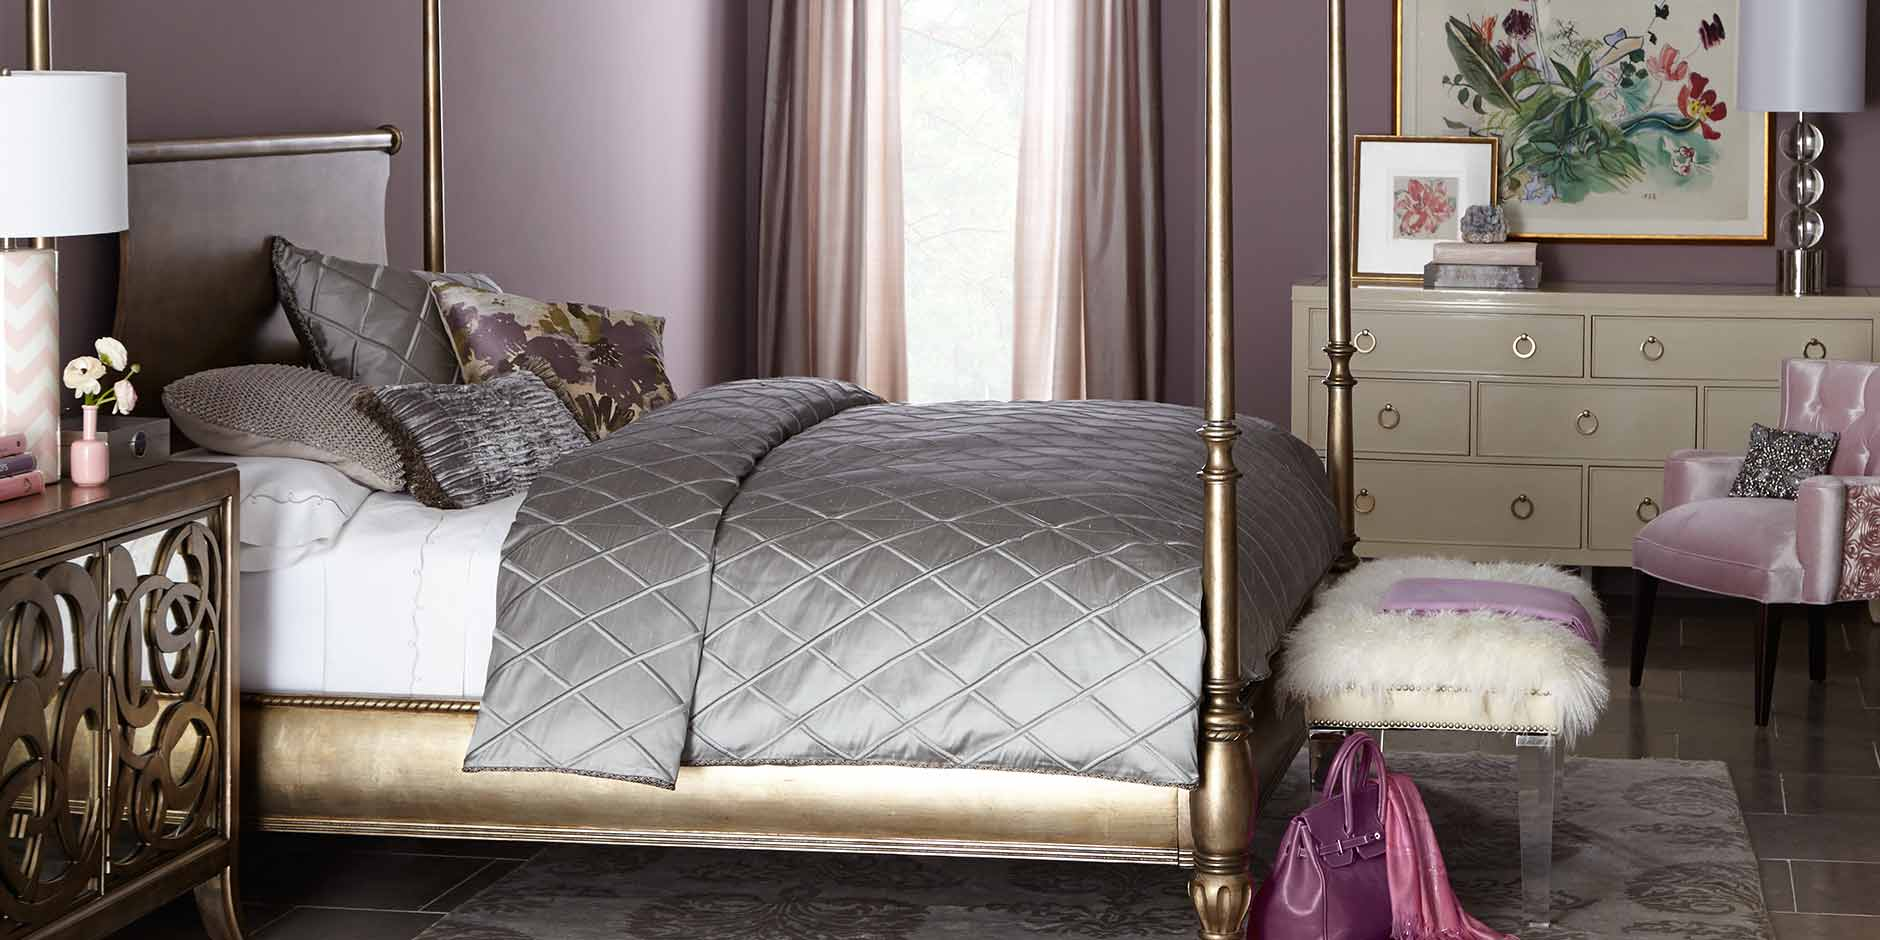 Wonderful Bedroom Completed with Grey Bedding and King Canopy Bed near White Dresser and Tufted Chair